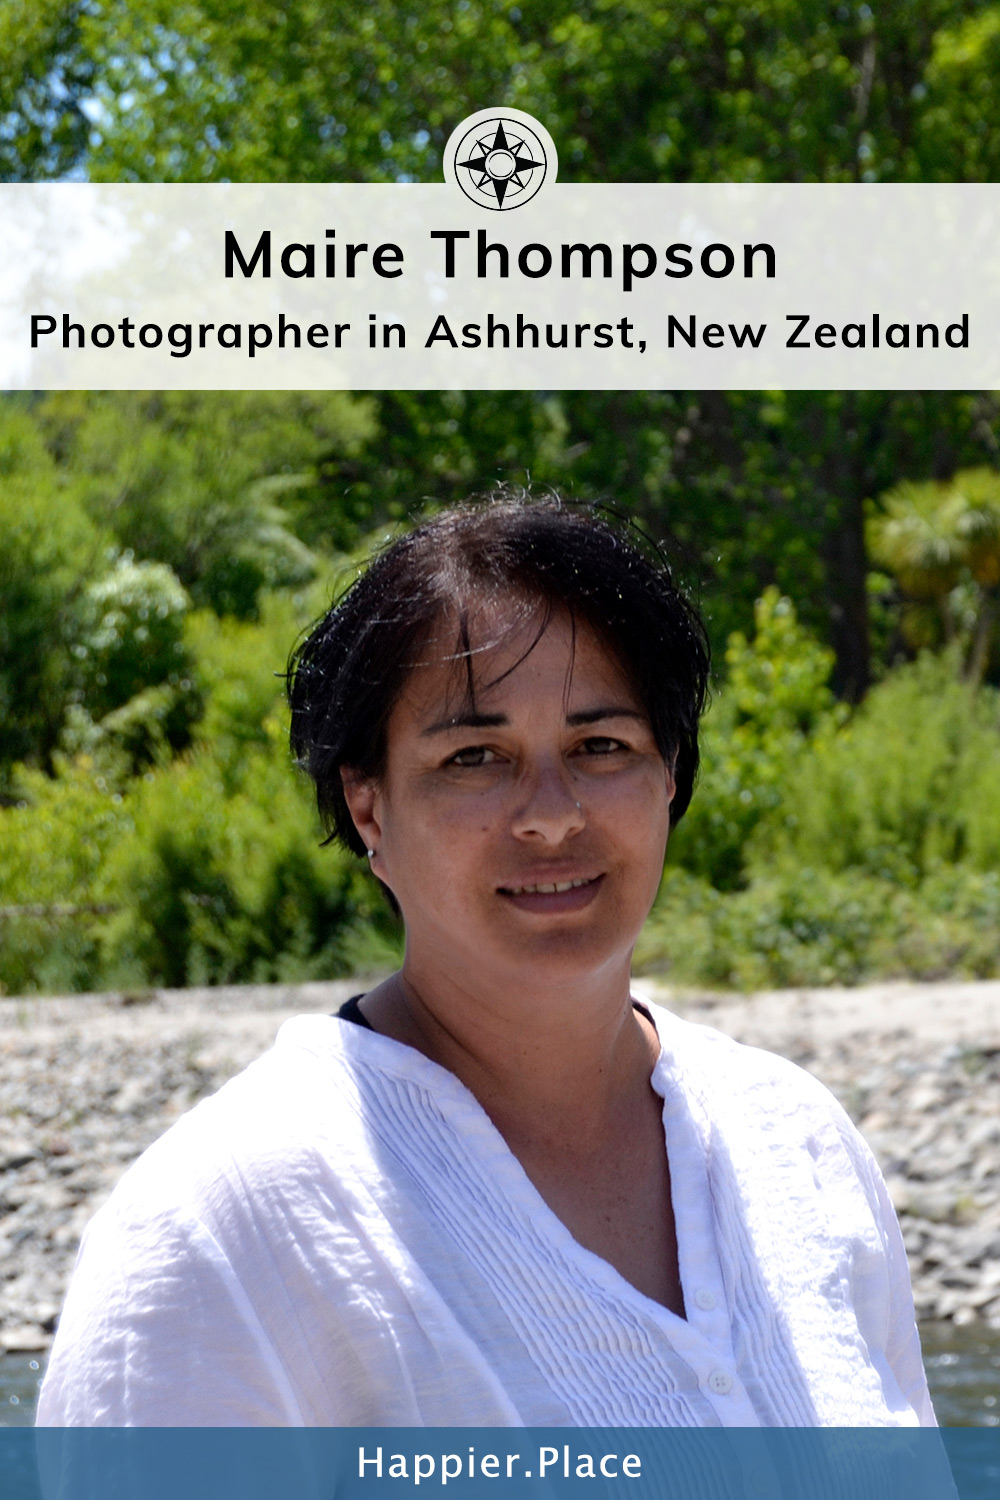 Maire Thompson - Photographer in Ashhurst, New Zealand - Profile for Happier Place